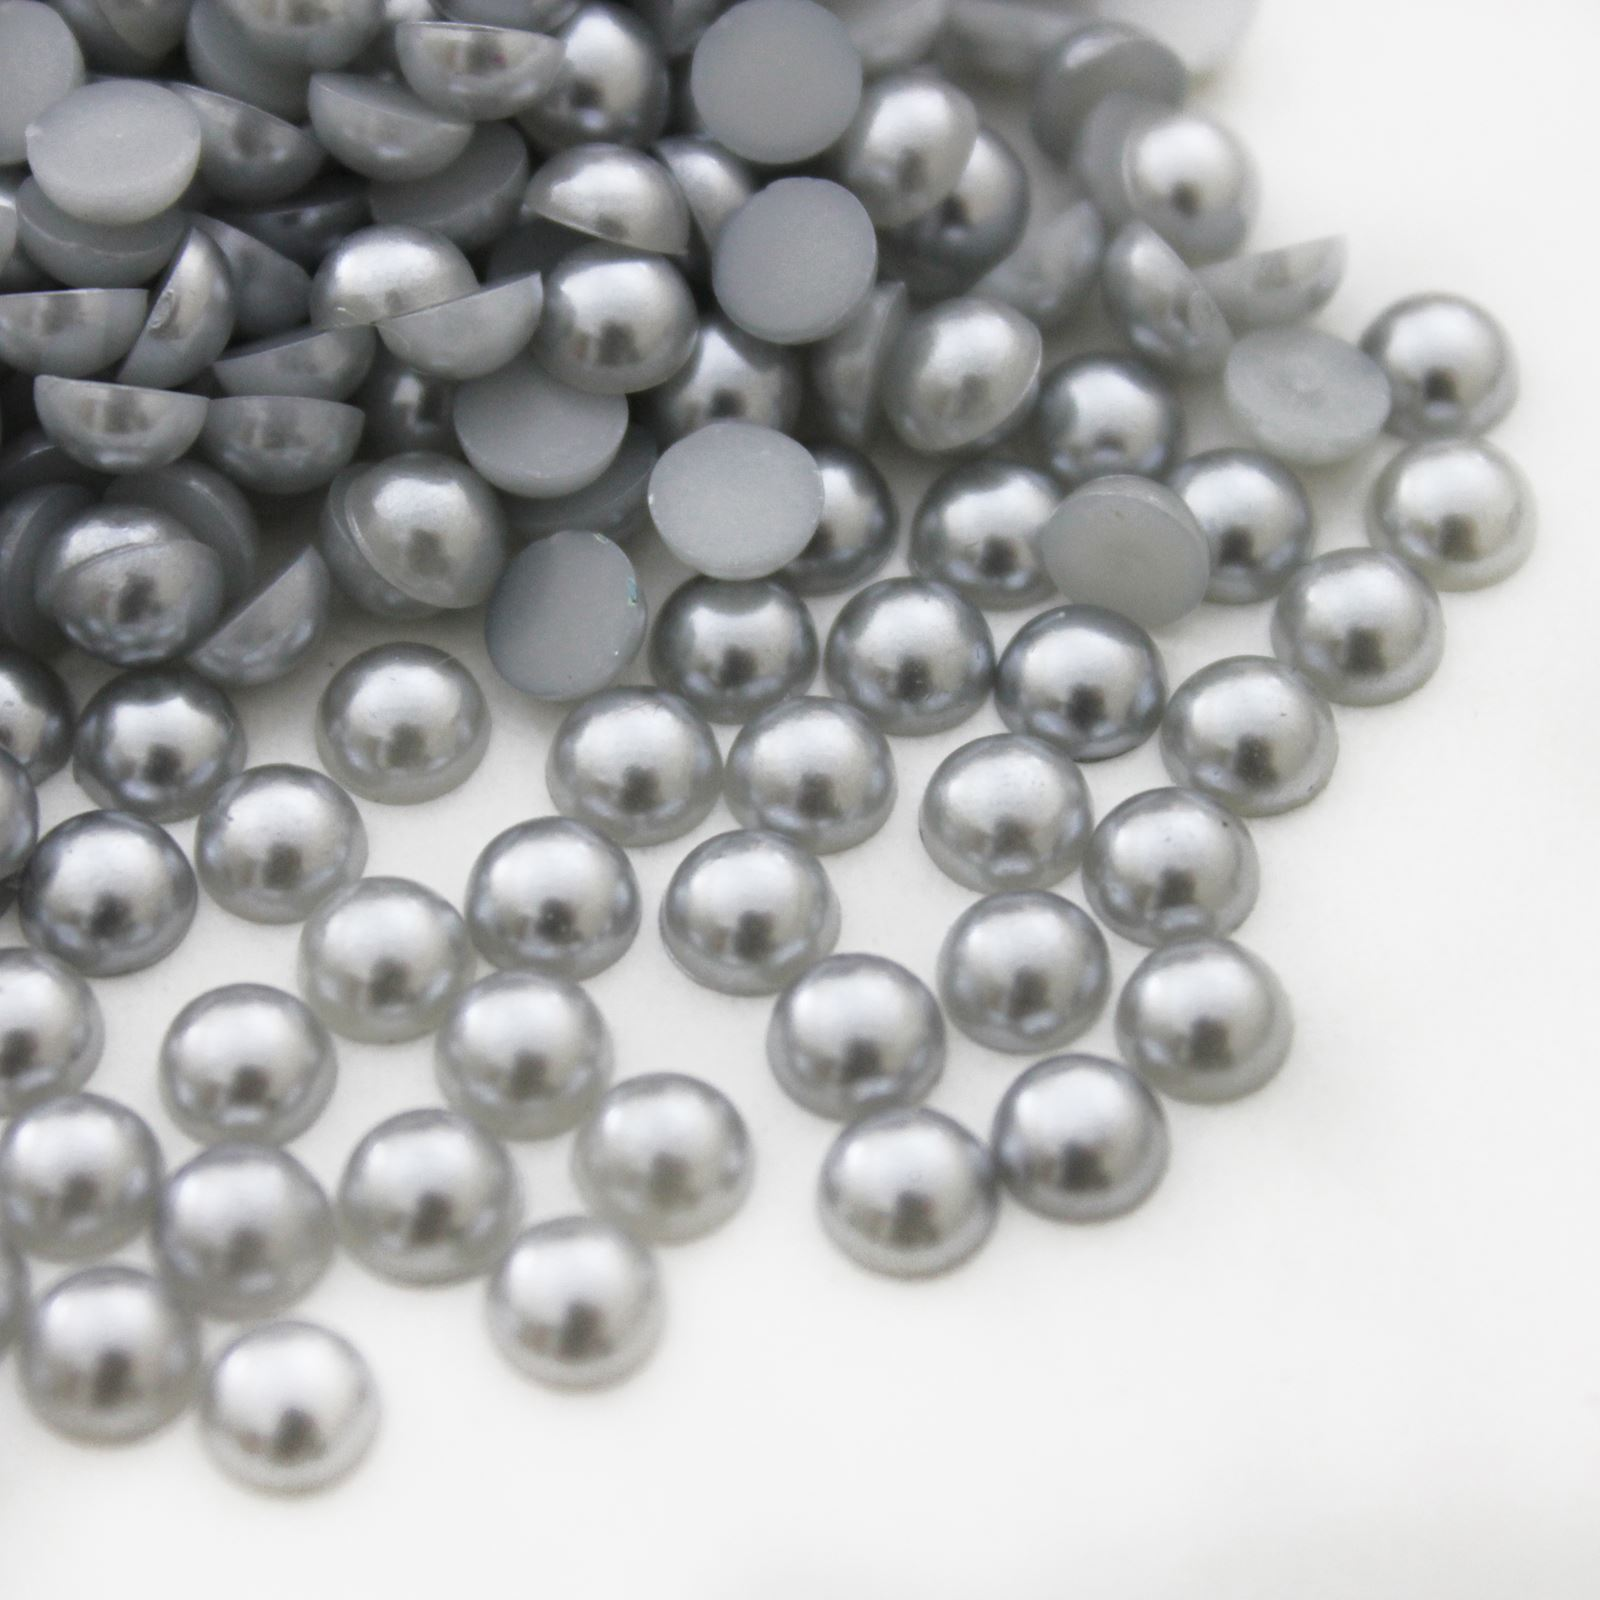 1000 HALF ROUND PEARLS - FLAT BACK - HIGH QUALITY - CRAFTS - 2MM, 3MM, 4MM, 5MM